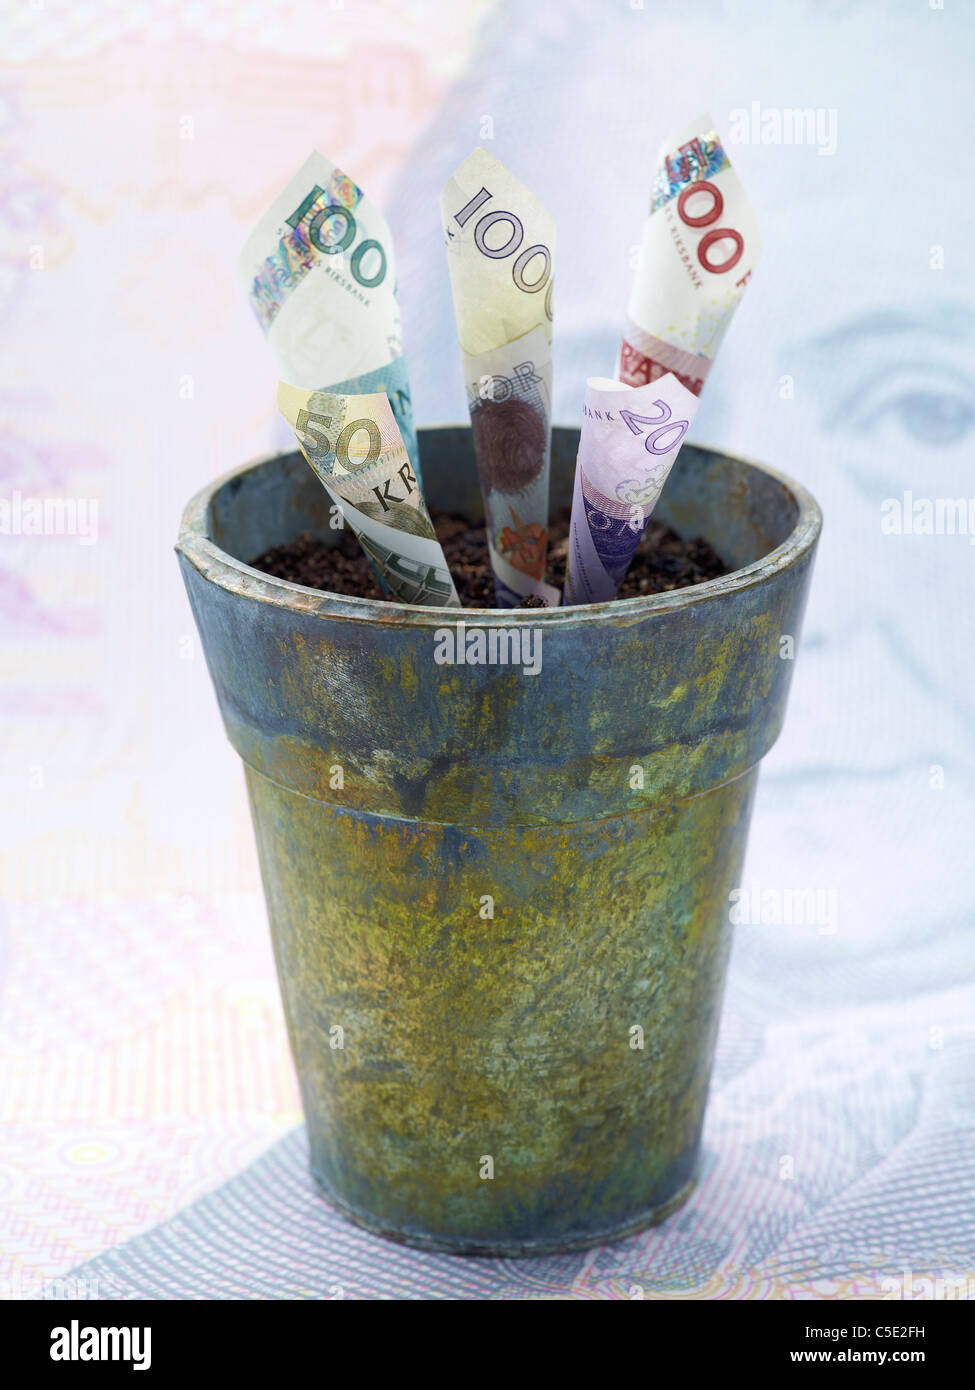 Close-up of rolled banknotes in the plant pot - Stock Image